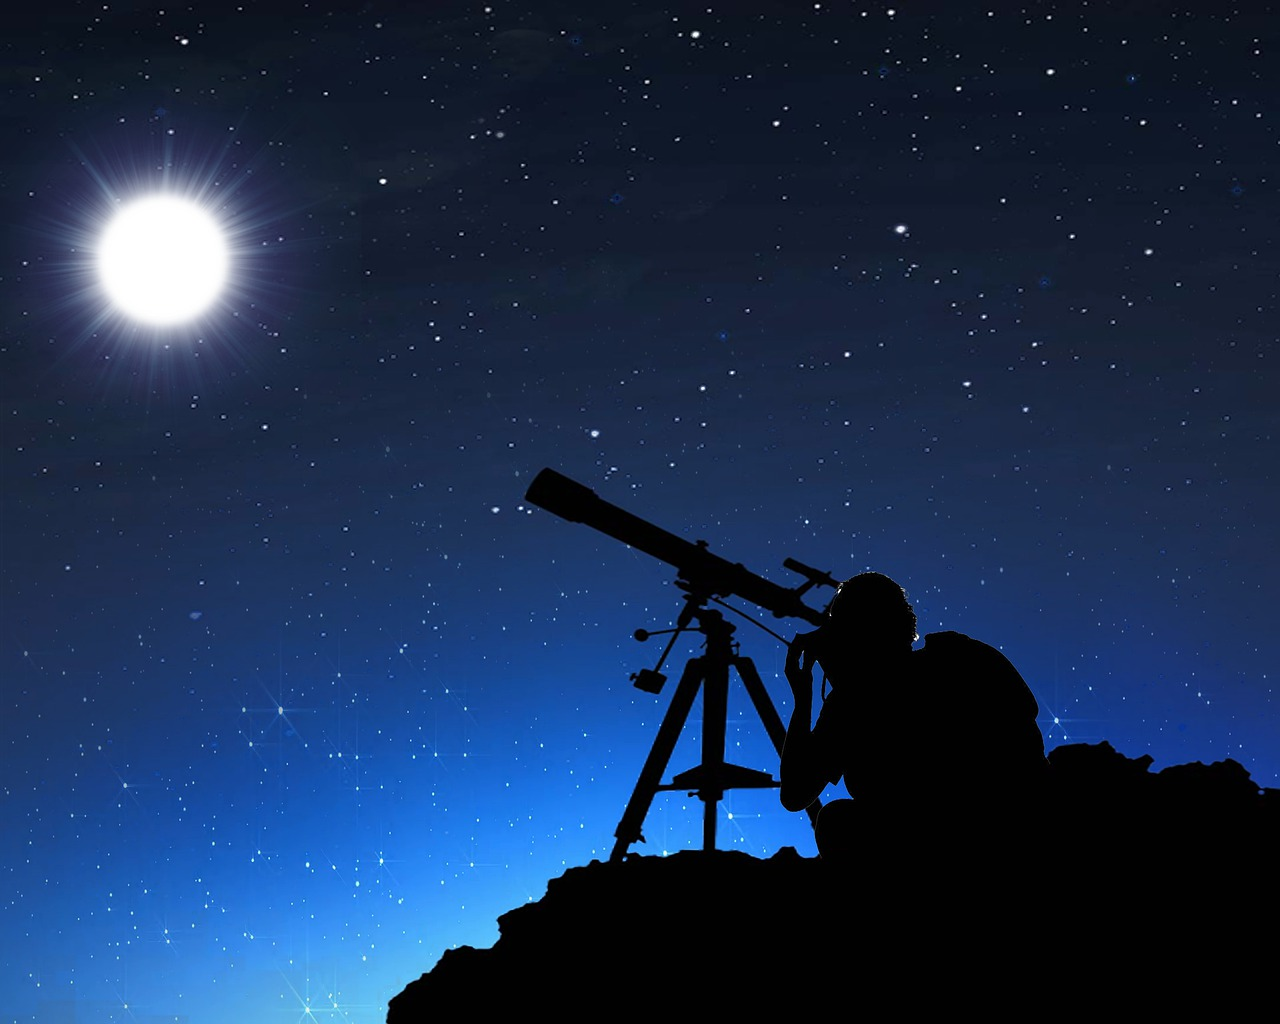 person using telescope in the night sky